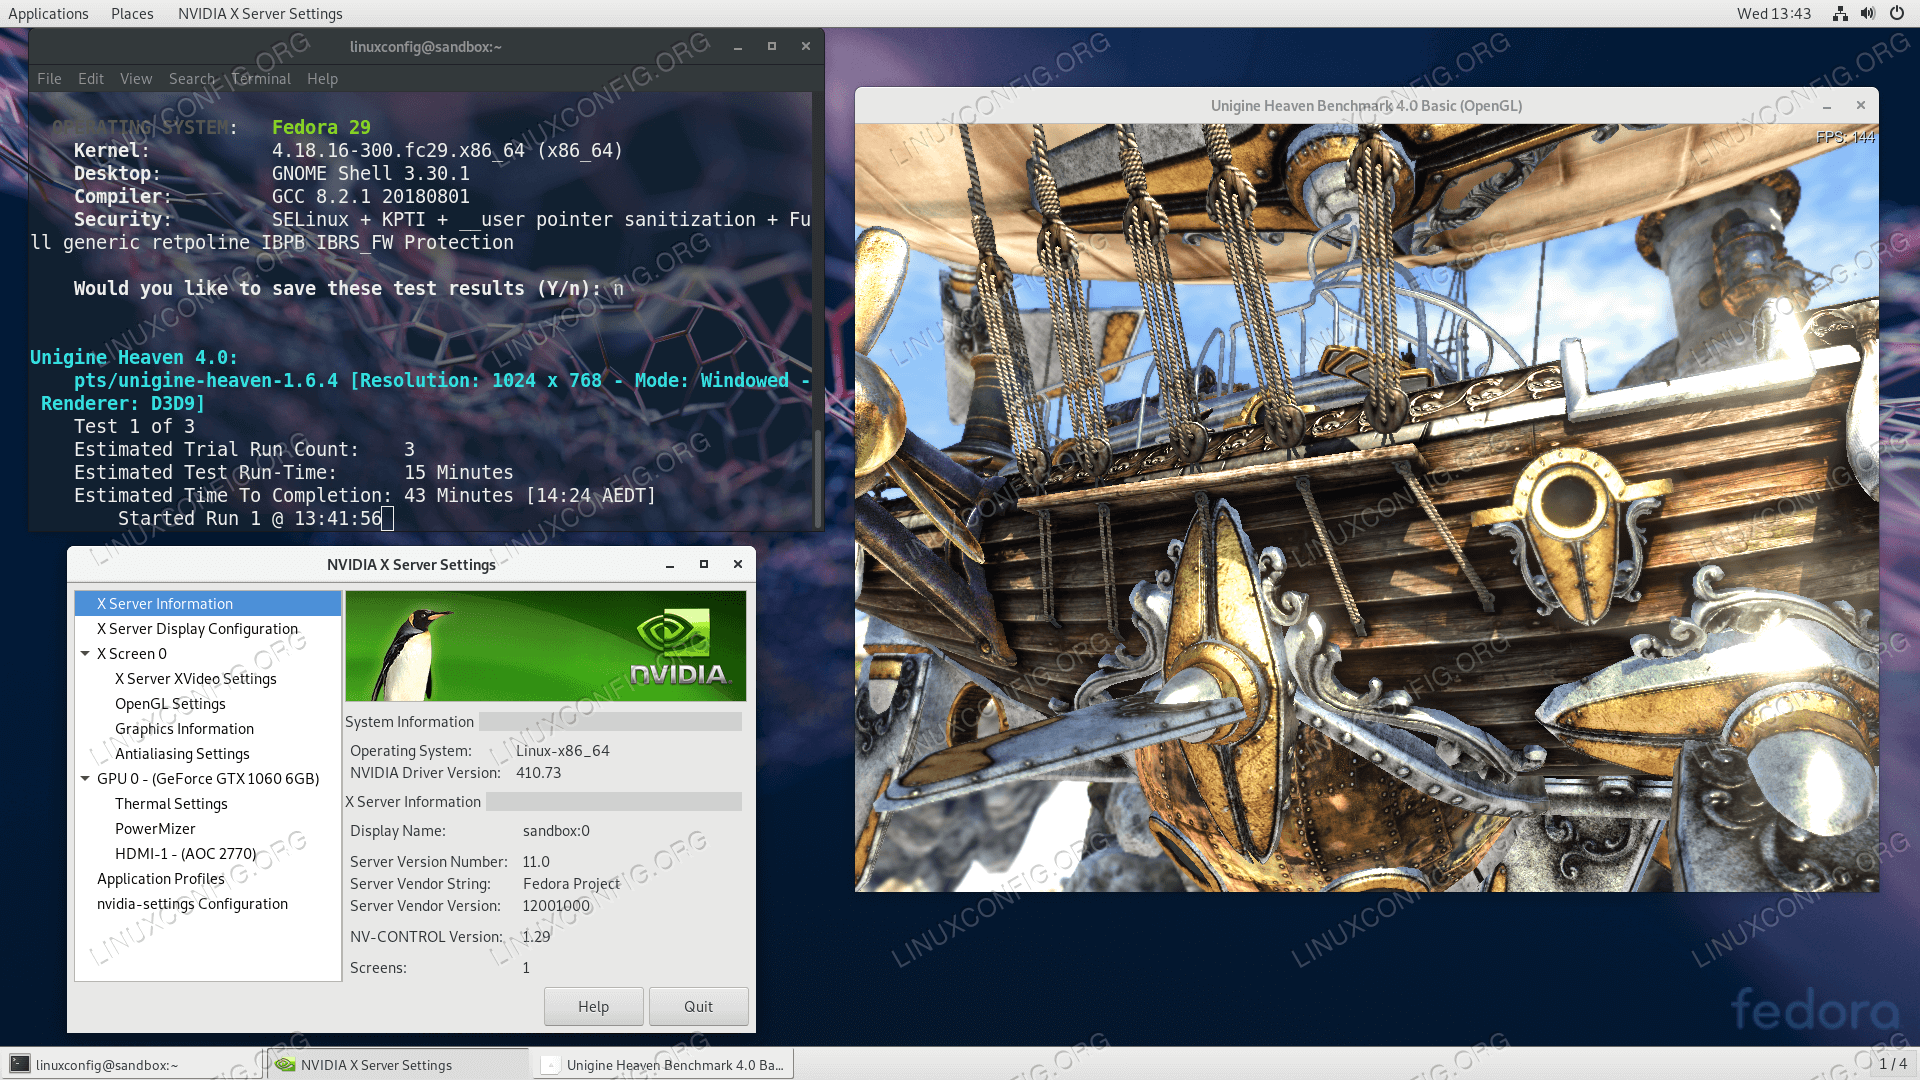 How to install the NVIDIA drivers on Fedora 29 Linux - LinuxConfig org